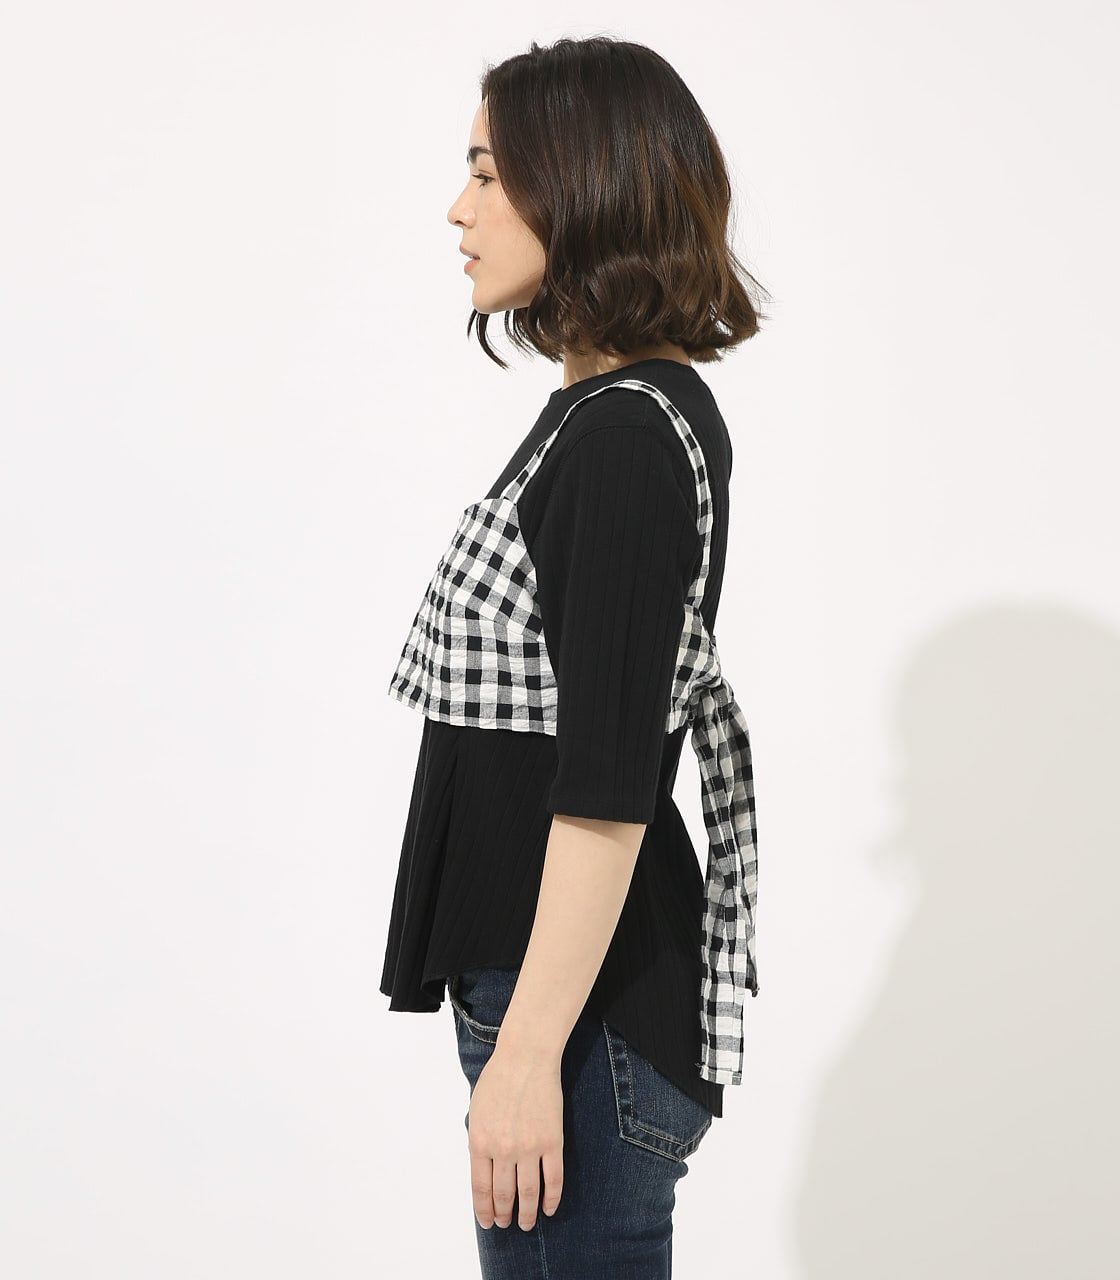 【AZUL BY MOUSSY】GINGHAM CHECK BUSTIER TOPS 【MOOK49掲載 90054】 詳細画像 柄BLK 5